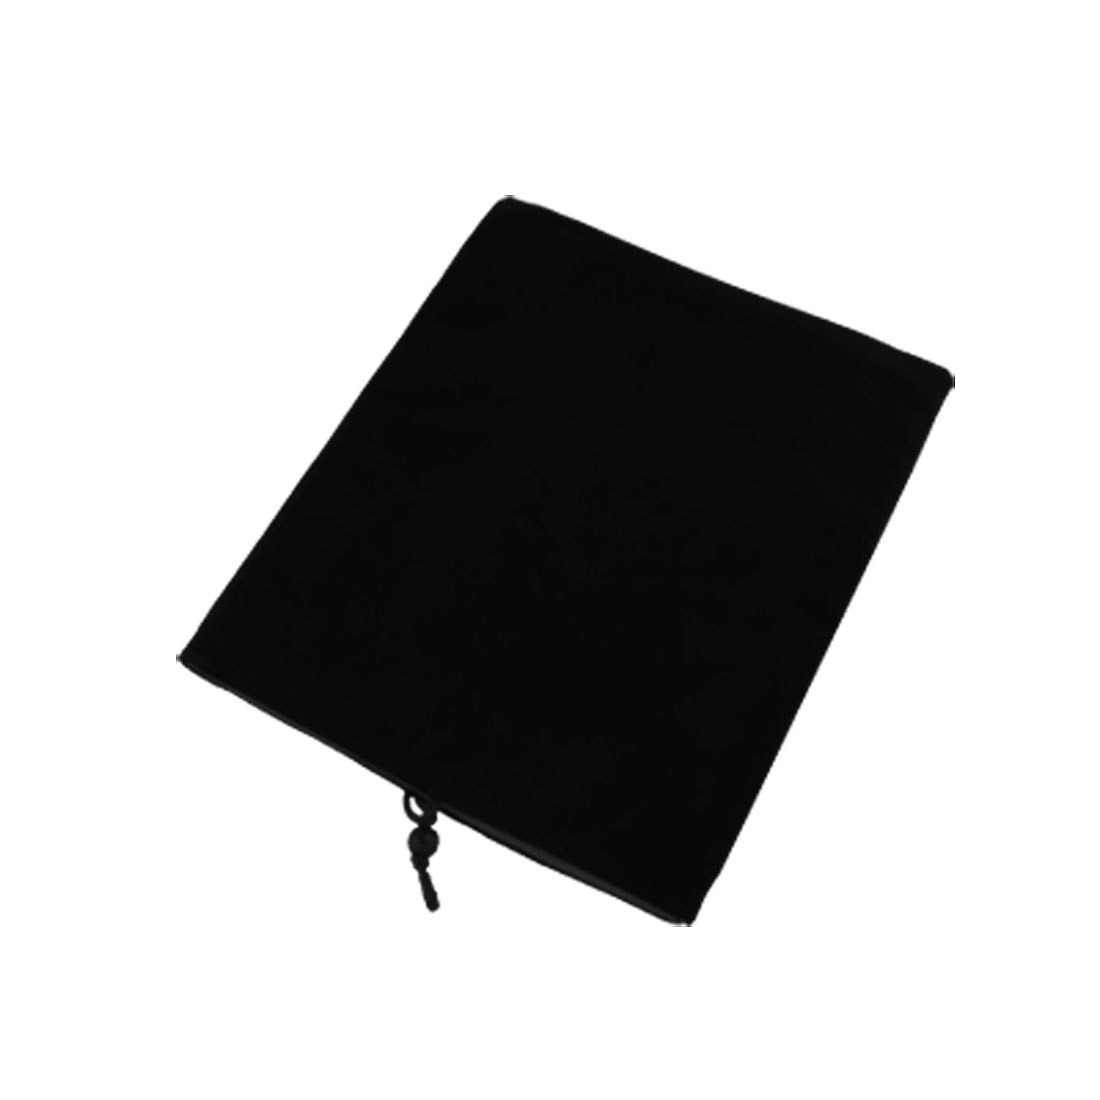 Black Velvet Bead Cord Pouch Case + Screen Guard for iPad 1